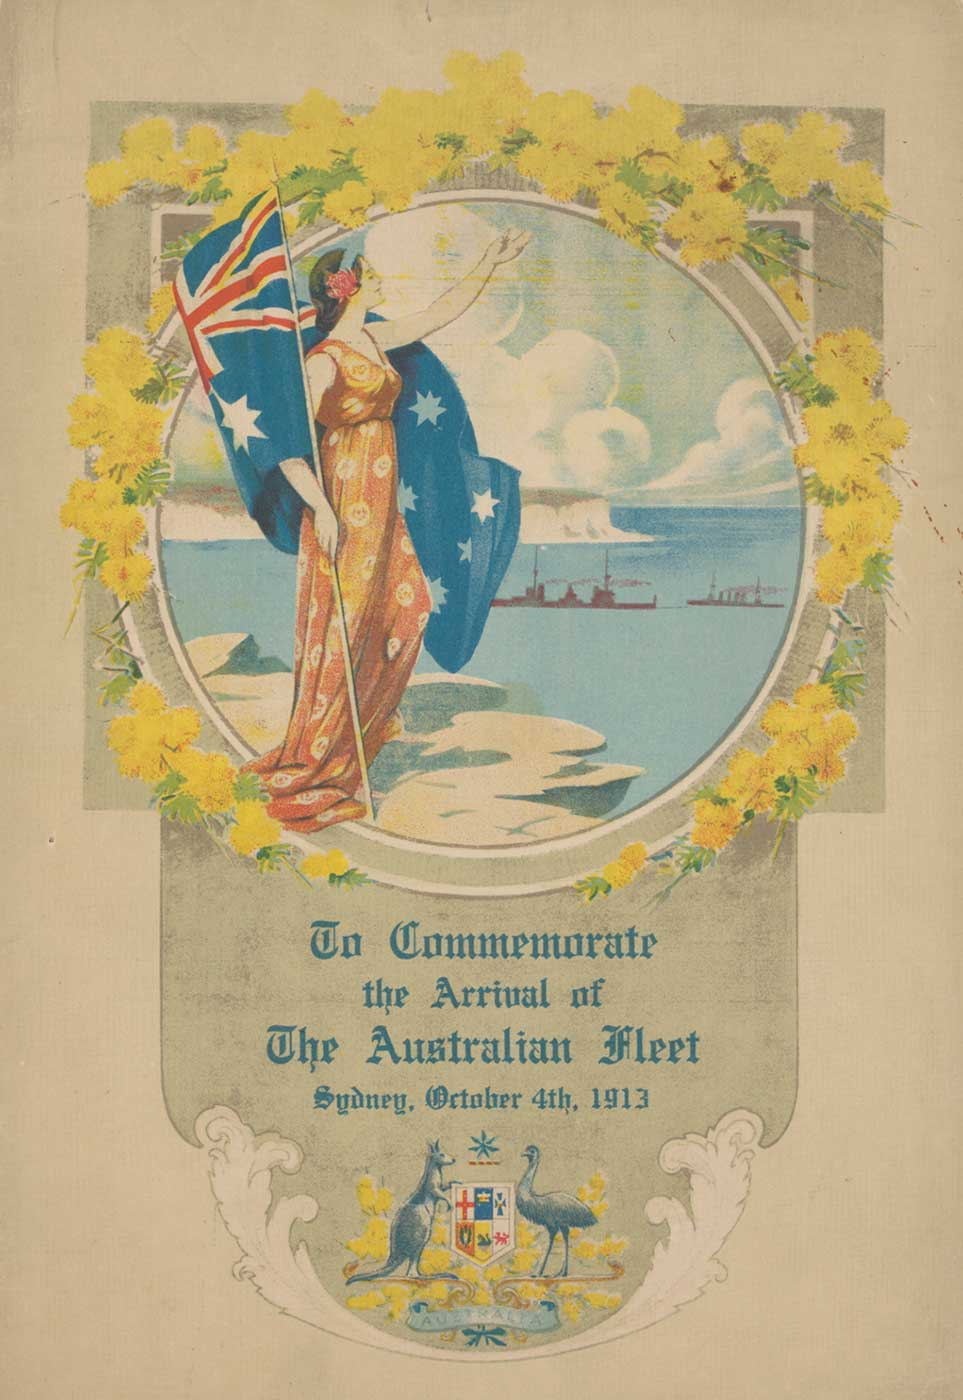 Cover of the souvenir program for the arrival of the fleet, 1913. - click to view larger image